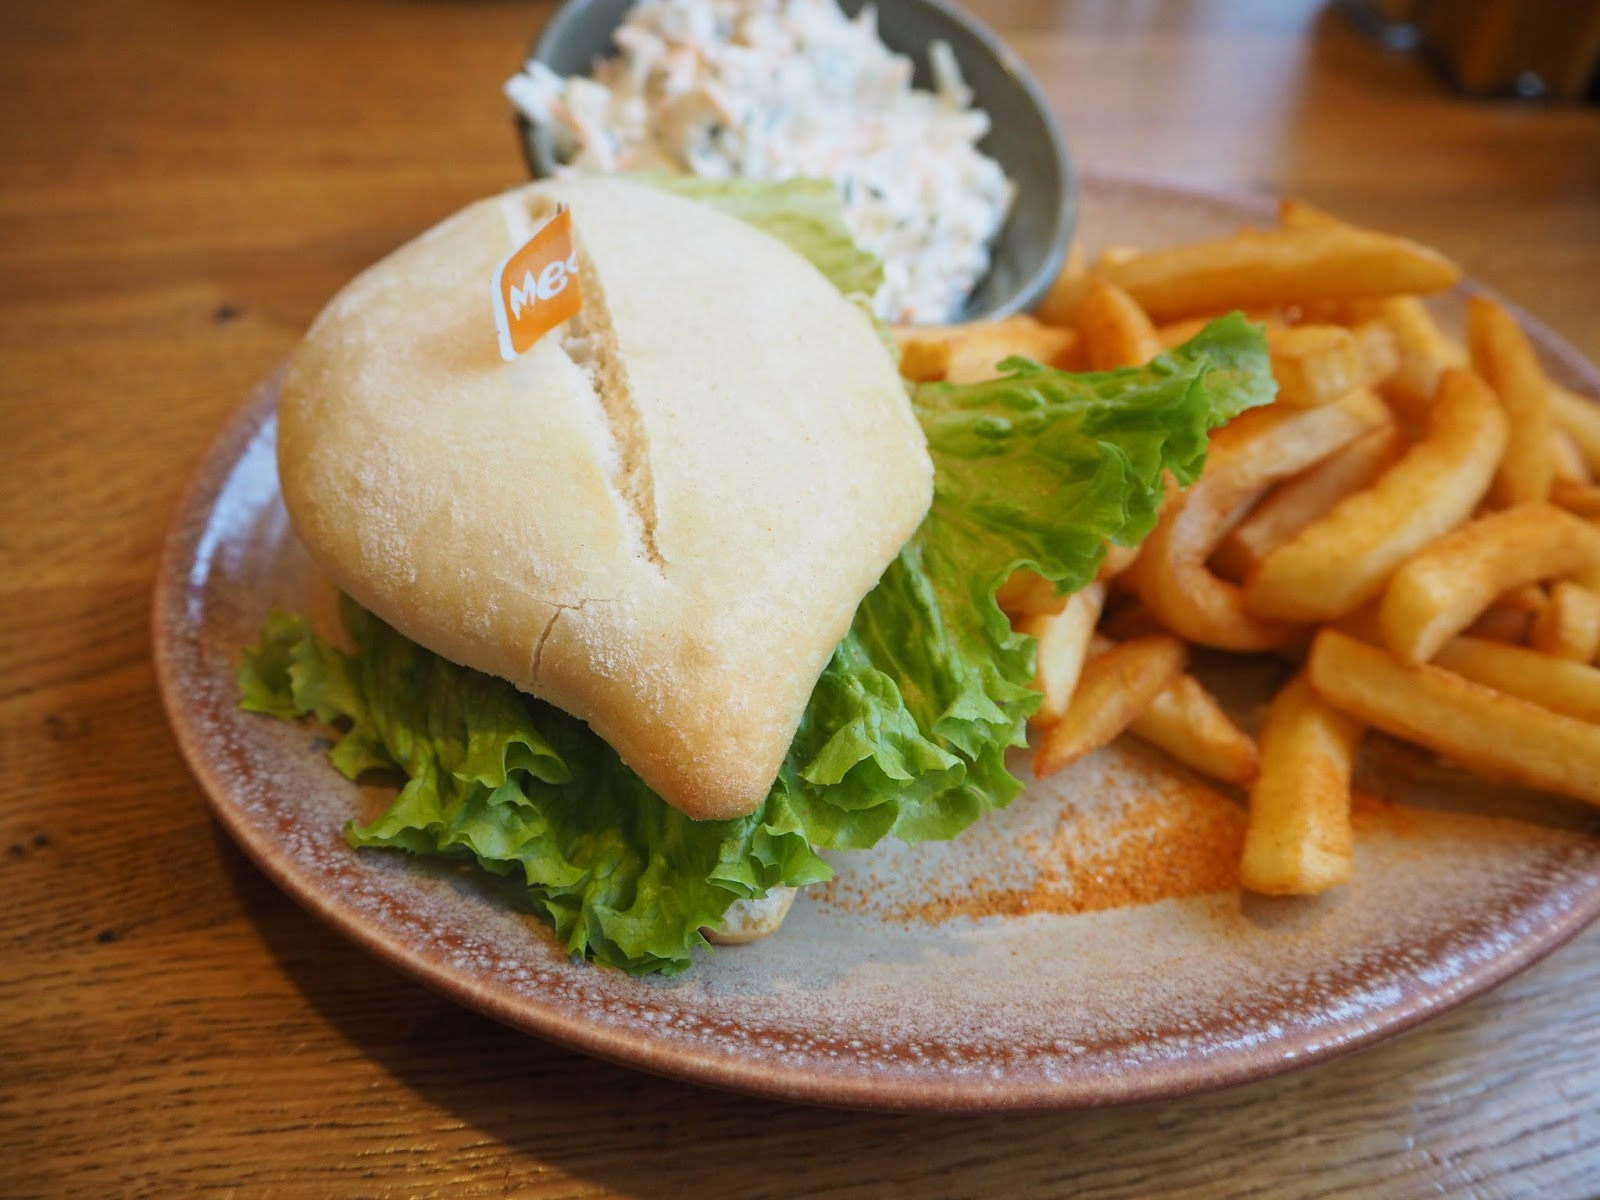 nandos-vegan-options-menu-copper-garden